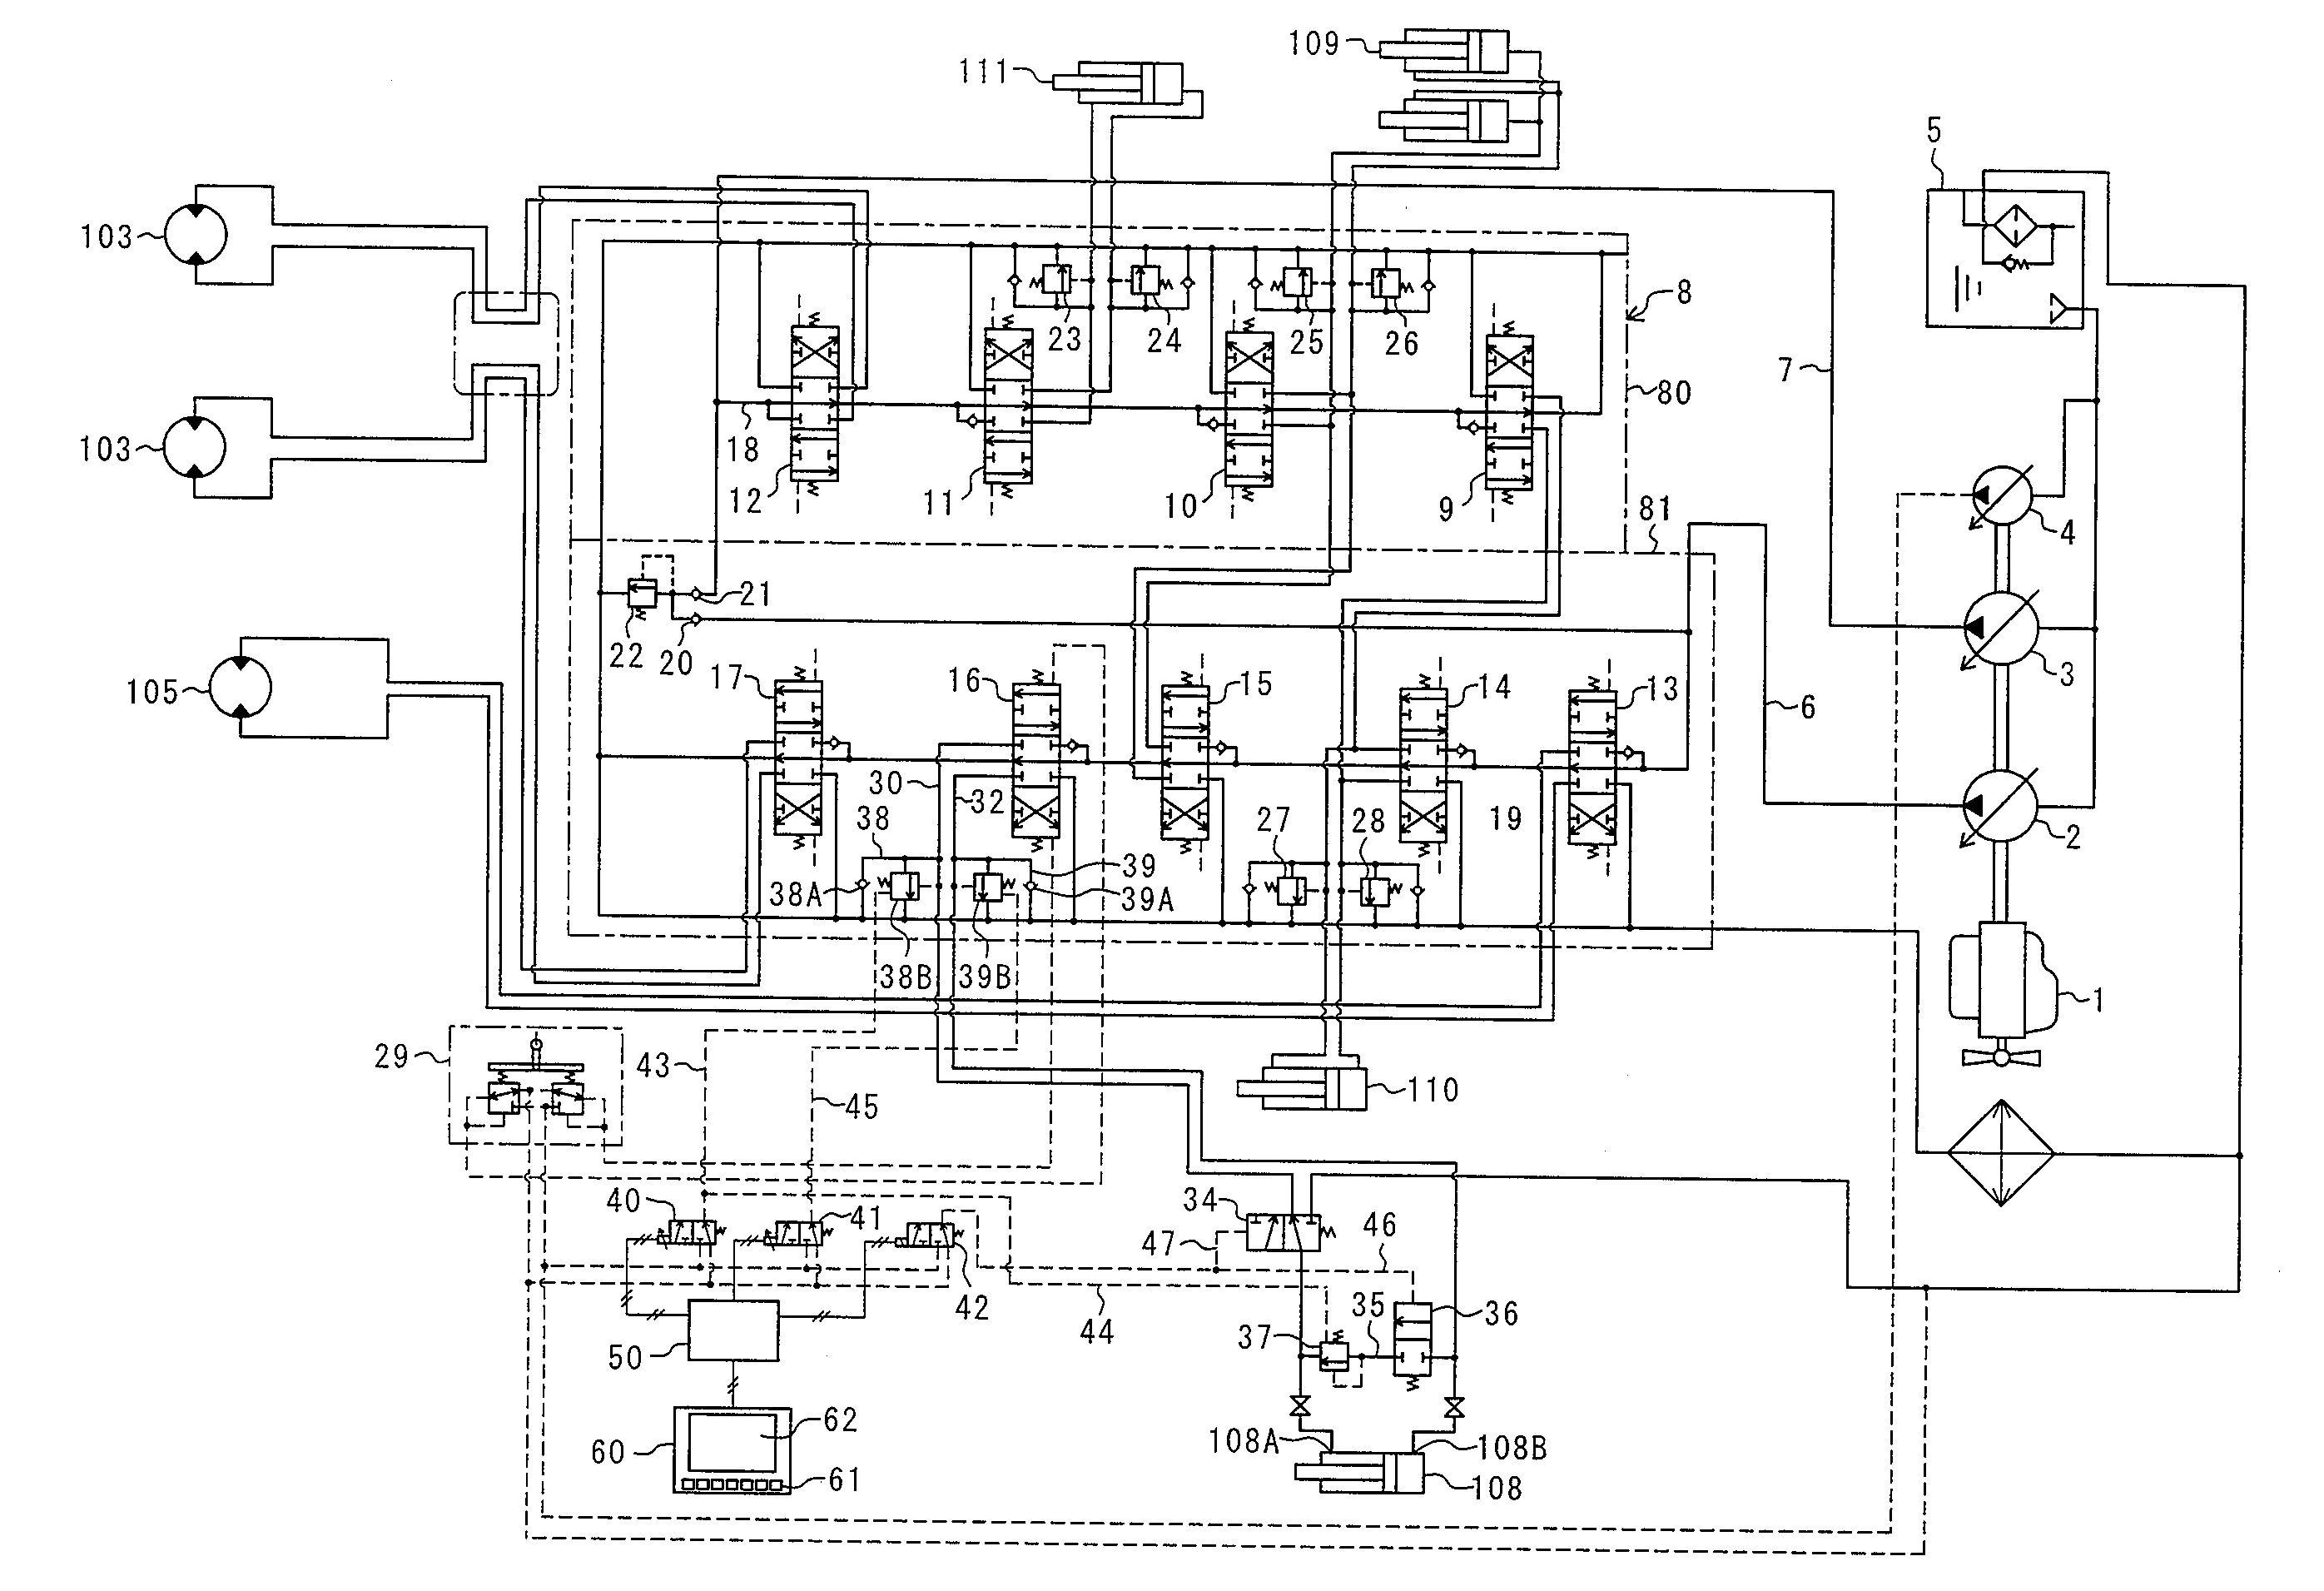 Mini Excavator Diagram Html together with Working And Main Parts Of Electric Generator together with Engine Diagram 3126 Caterpillar Wiring furthermore Wiring Diagram For Caterpillar Forklift V50d besides New Holland Ce Europe 2013. on caterpillar wiring schematics